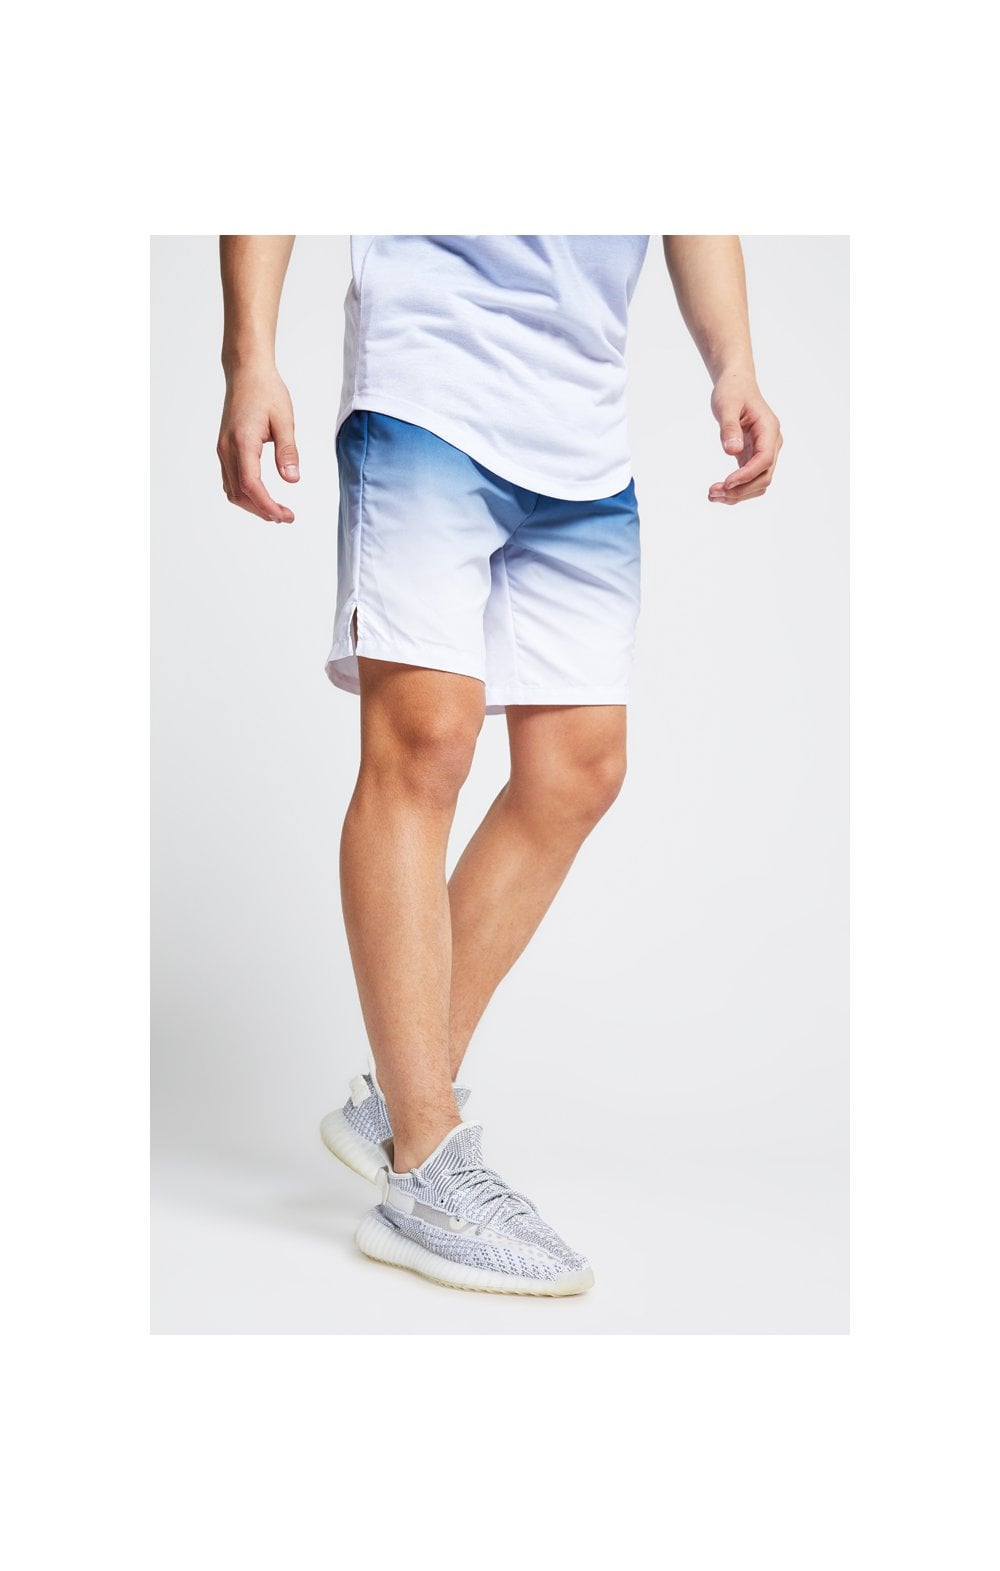 Load image into Gallery viewer, Illusive London Fade Swim Shorts - Navy & White (1)